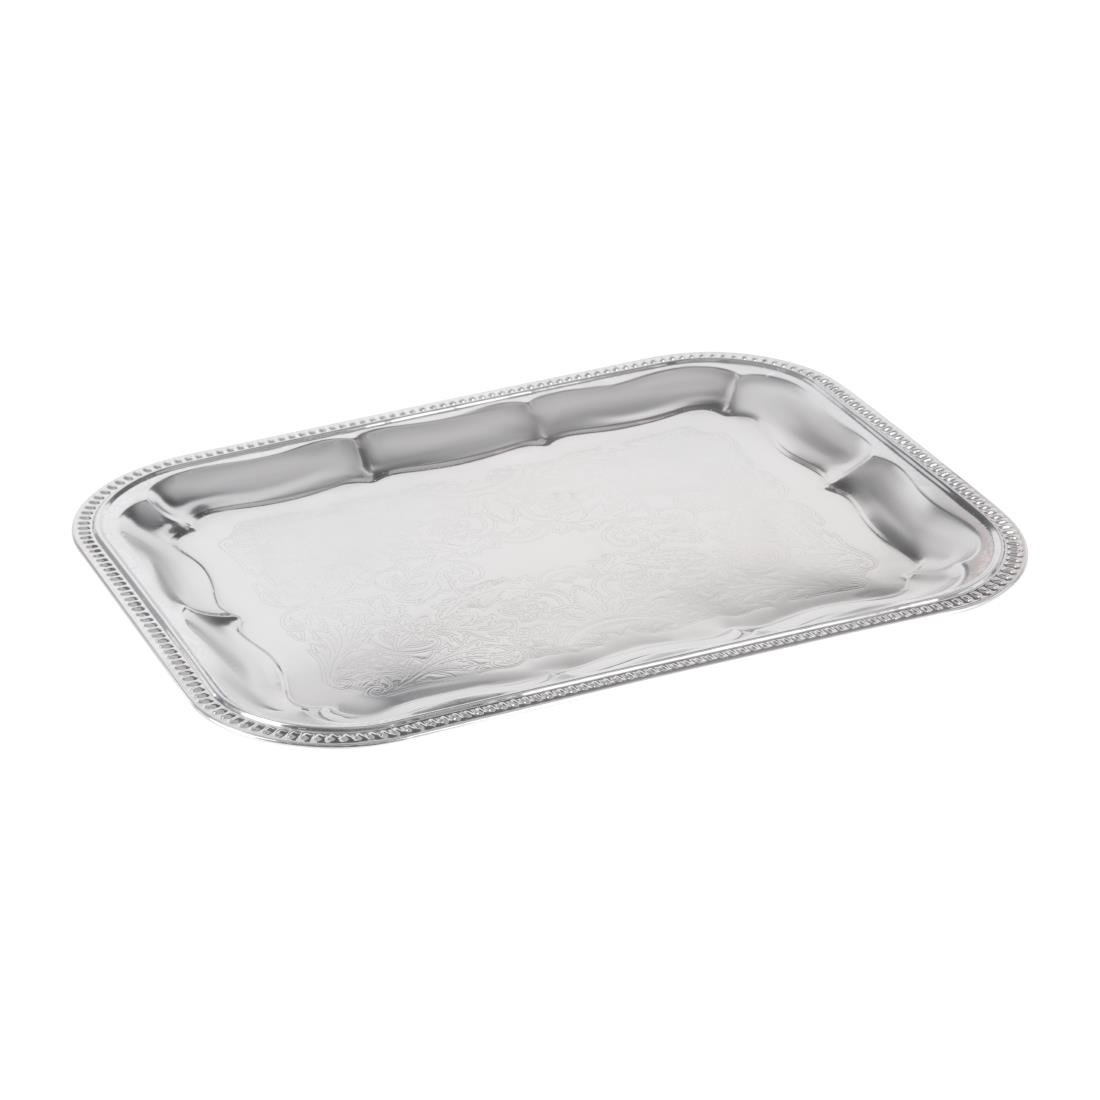 Image of APS Semi-Disposable Party Tray 410 x 310mm Chrome